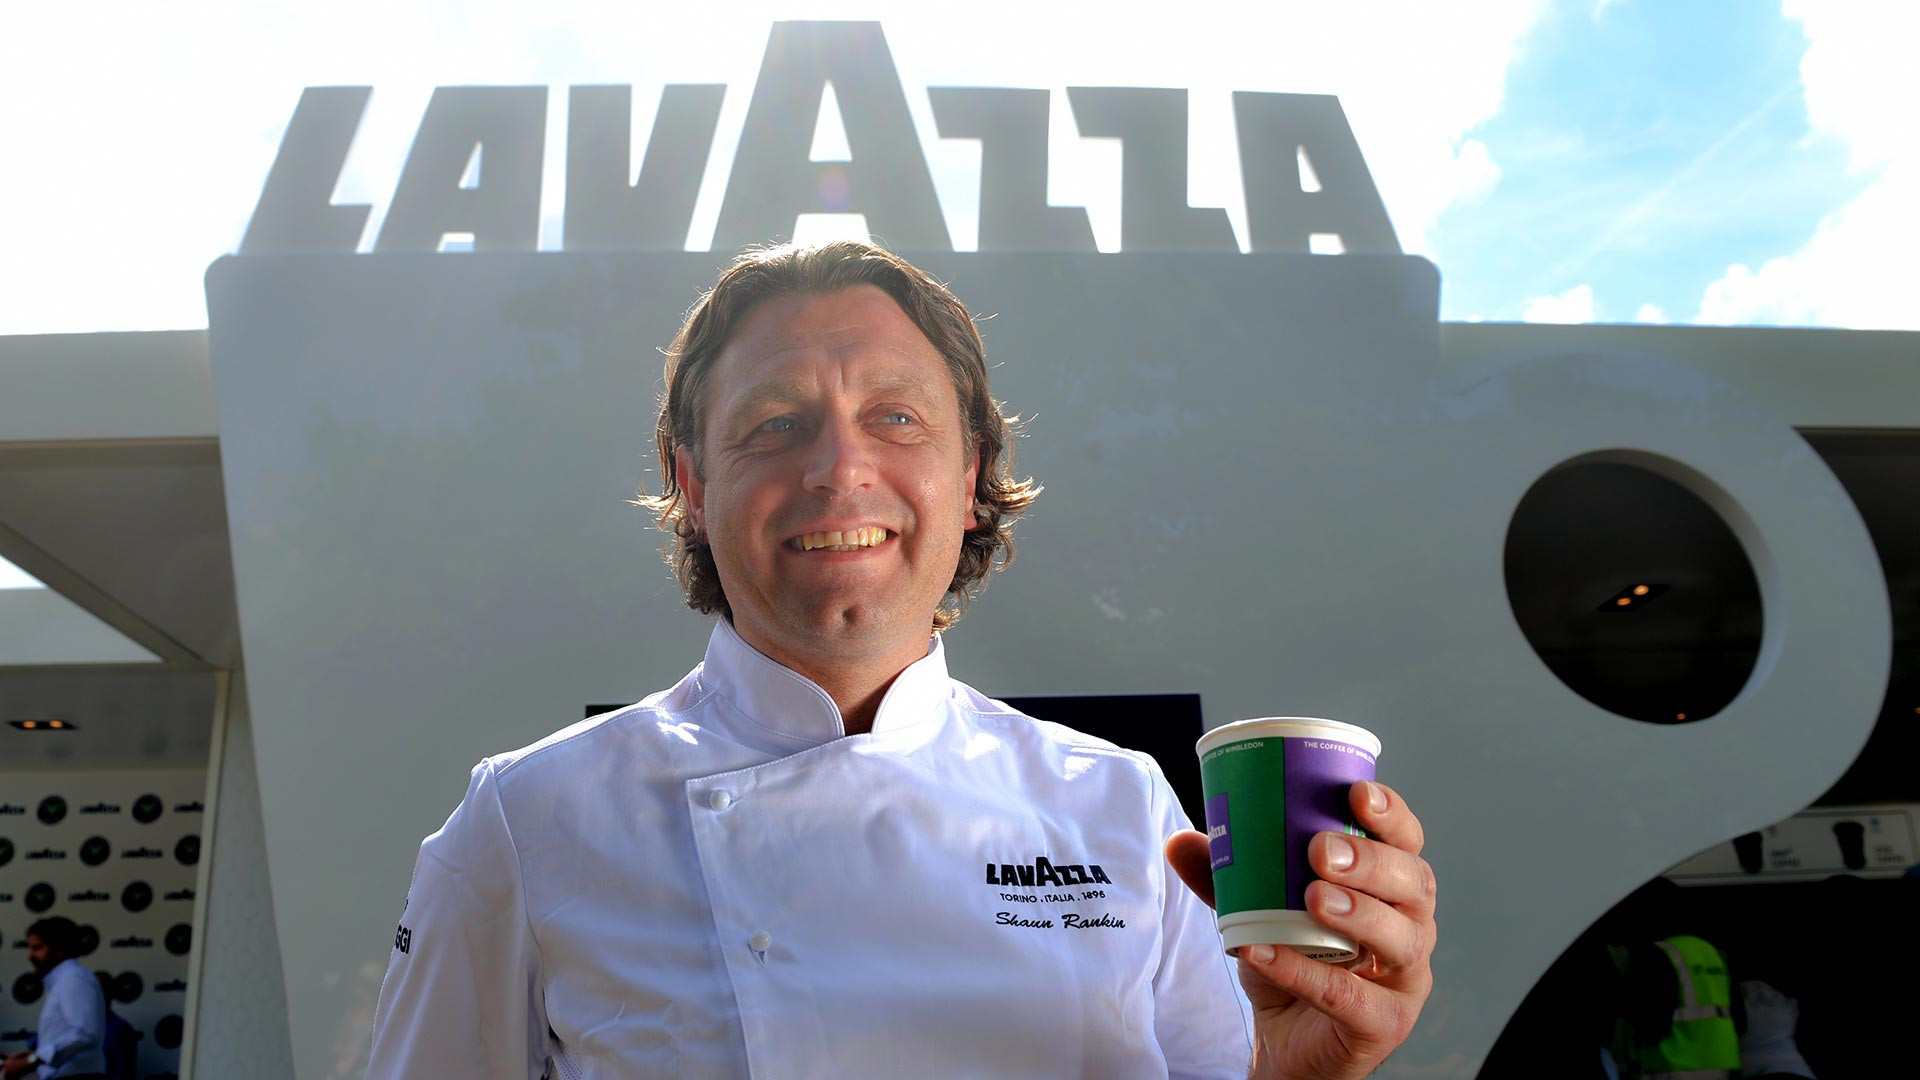 Michelin starred chef Shaun Rankin enjoys a Lavazza coffee at Wimbledon 2017